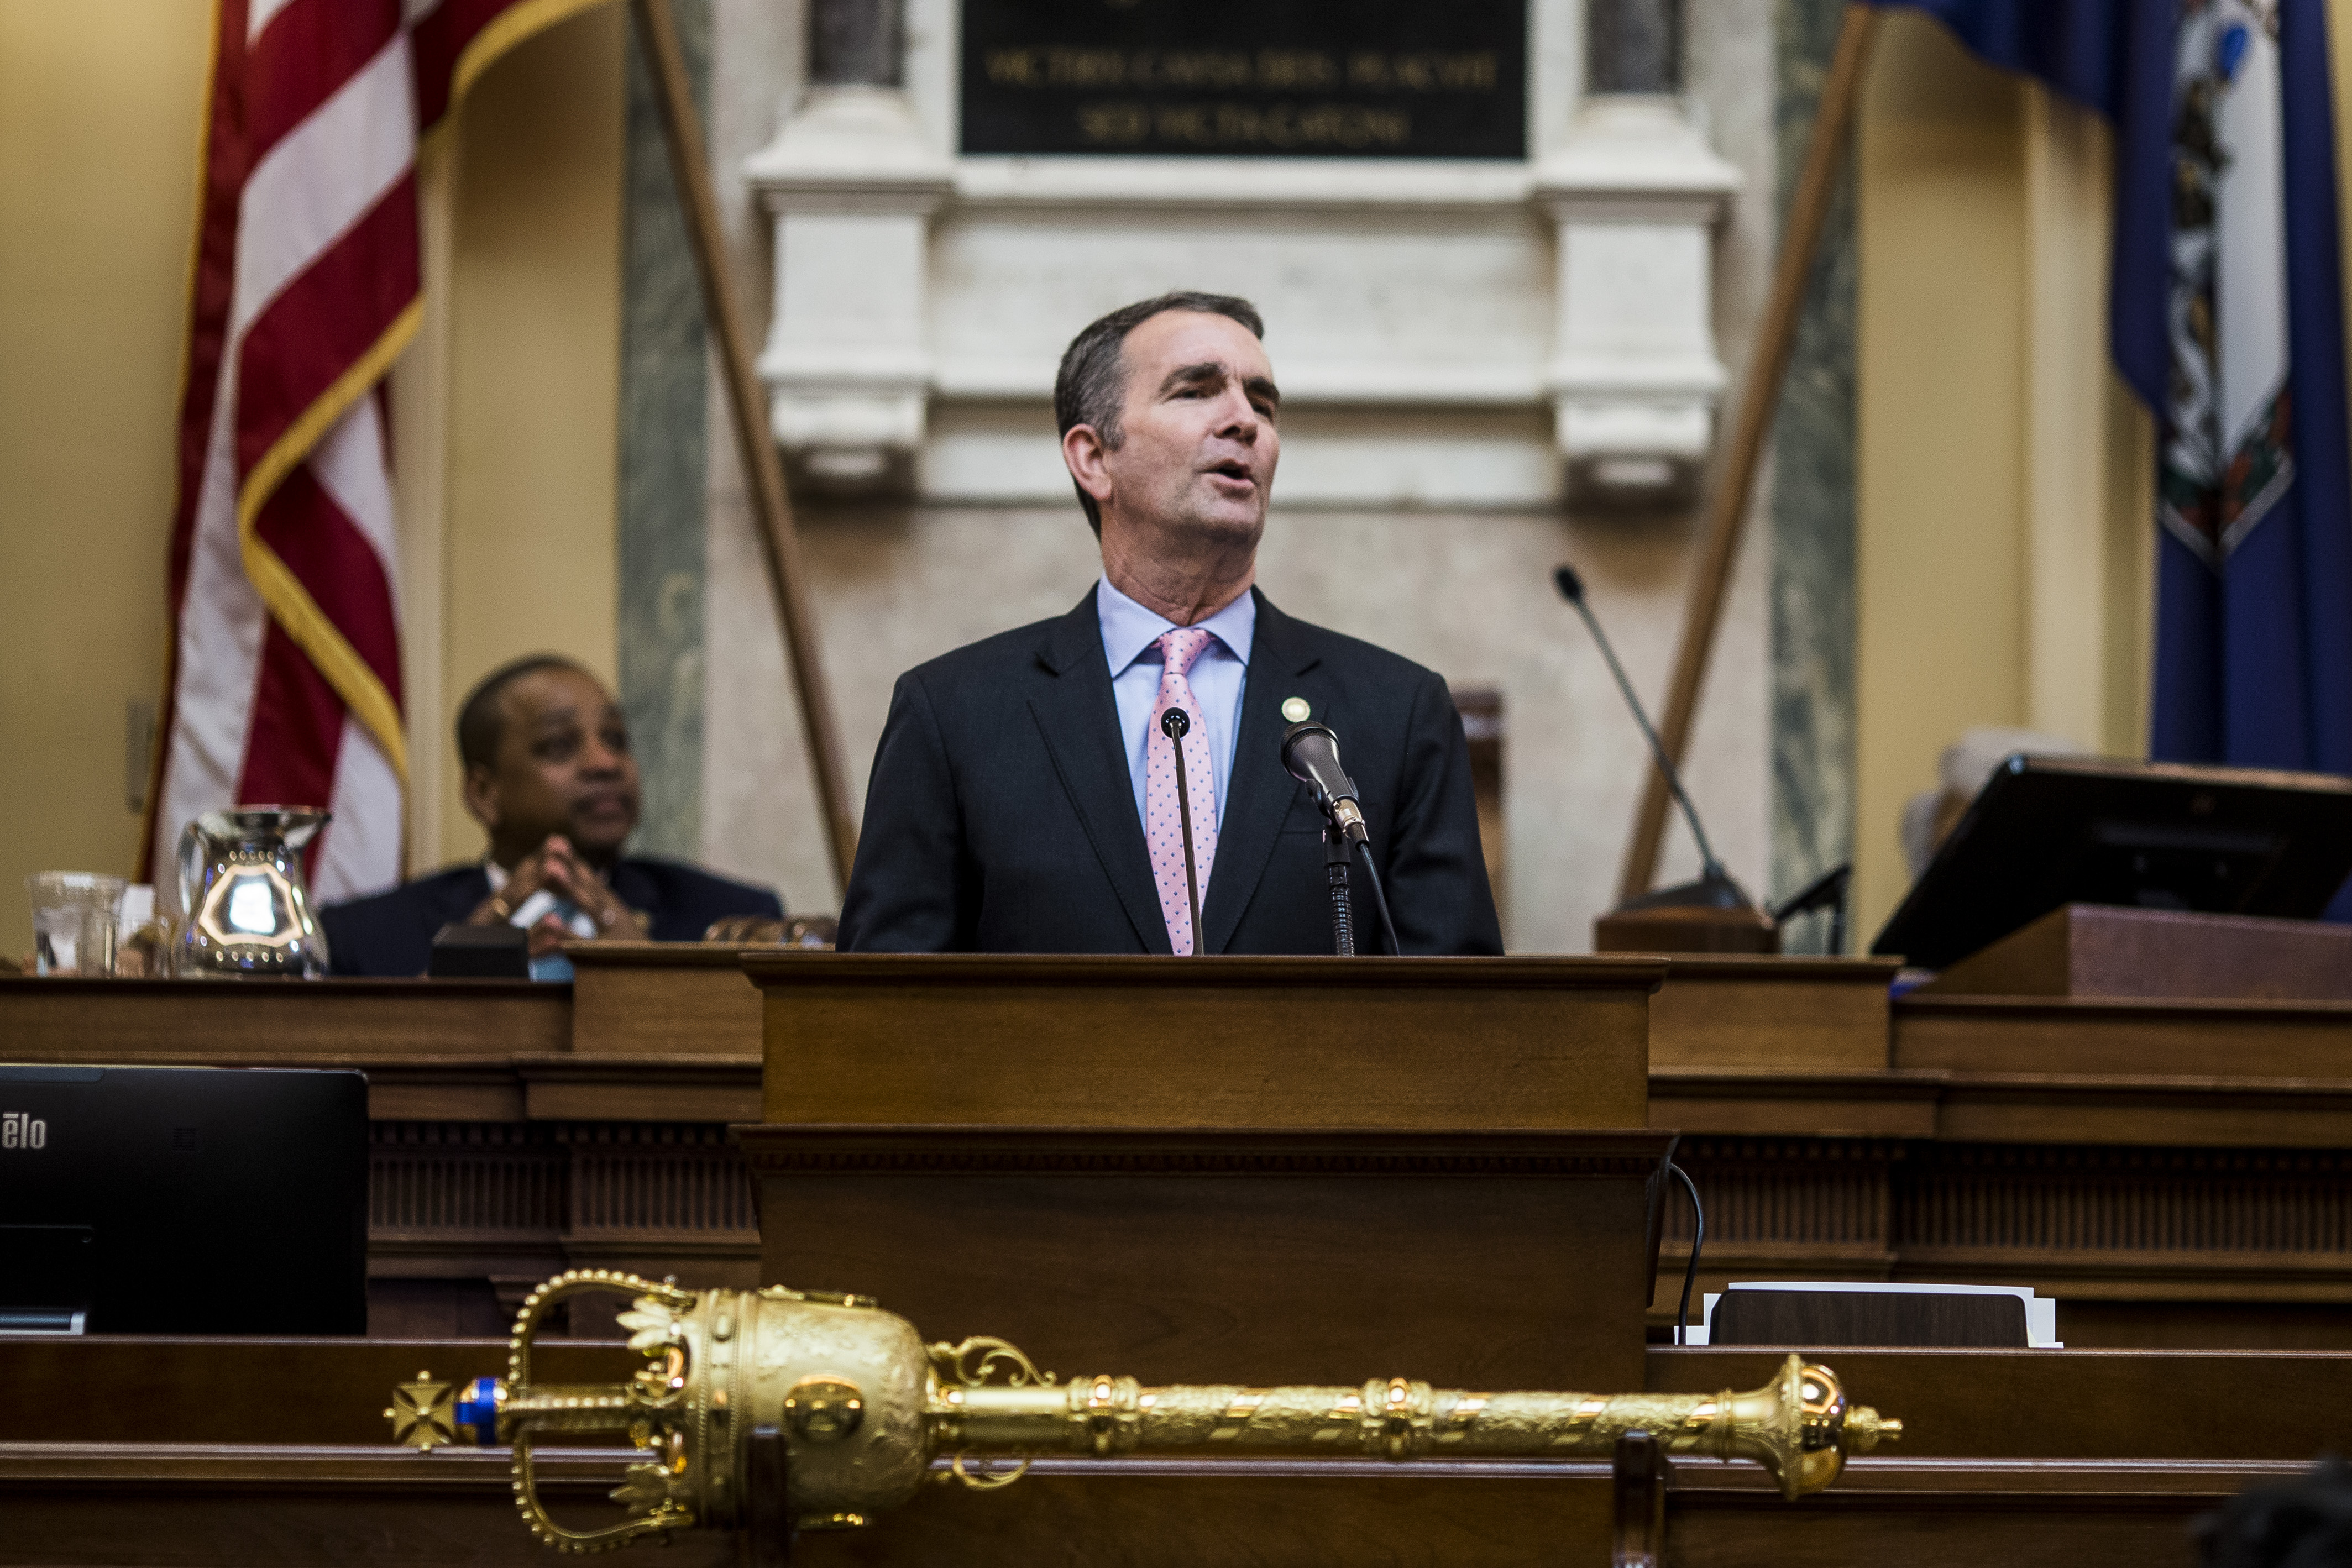 RICHMOND, VA - JANUARY 08: Gov. Ralph Northam delivers the State of the Commonwealth address at the Virginia State Capitol on January 8, 2020 in Richmond, Virginia. The 2020 legislative session began today under Democratic control. (Photo by Zach Gibson/Getty Images)